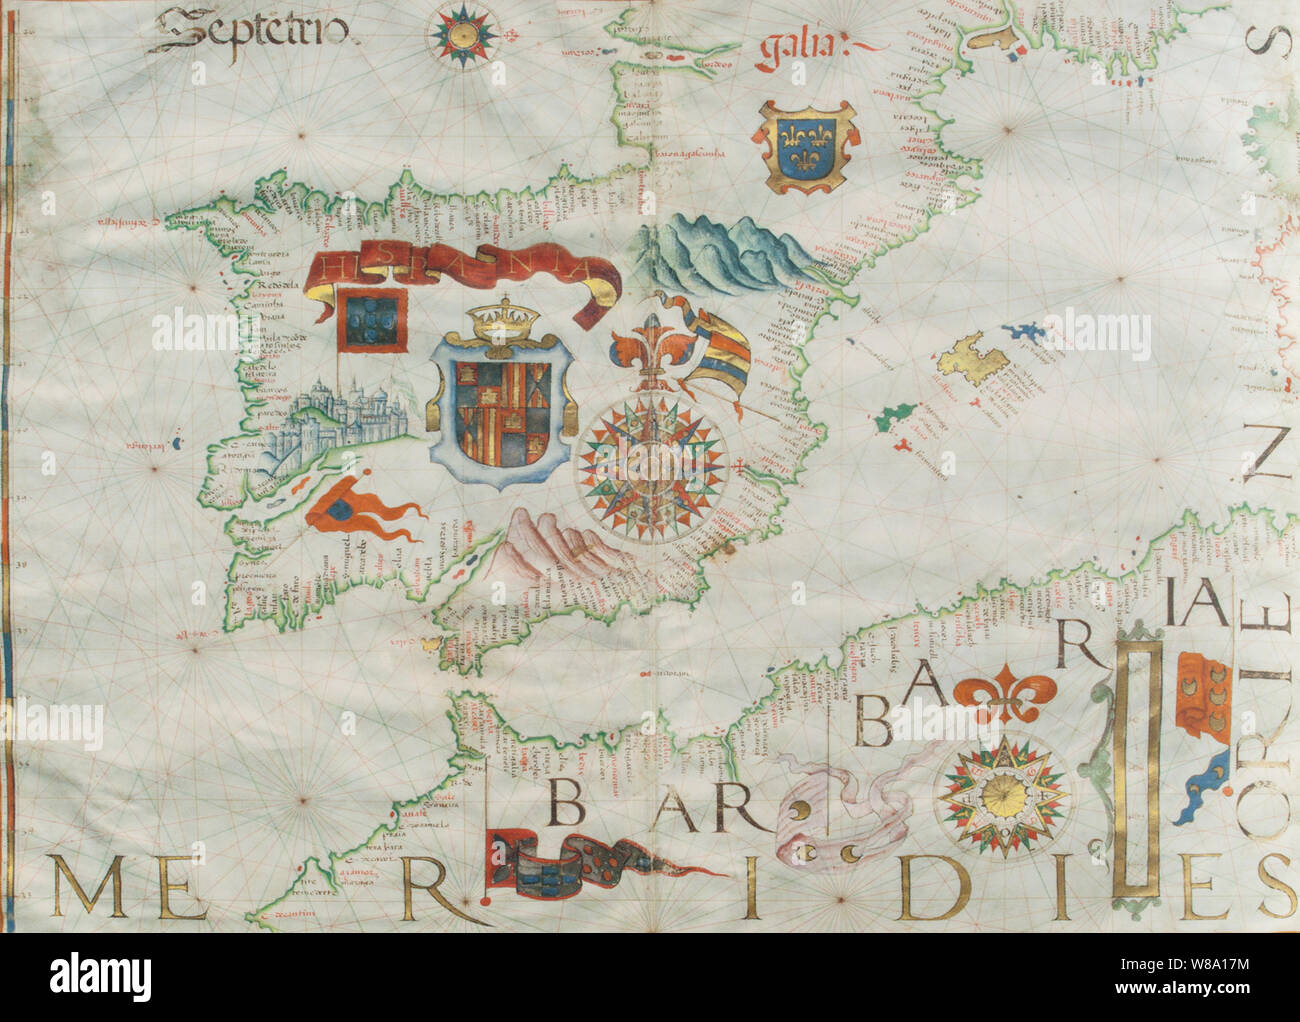 1561 Portulan map of Ibrian Peninsula painted by Diego Homen. Original at Spanish Naval Museum Stock Photo